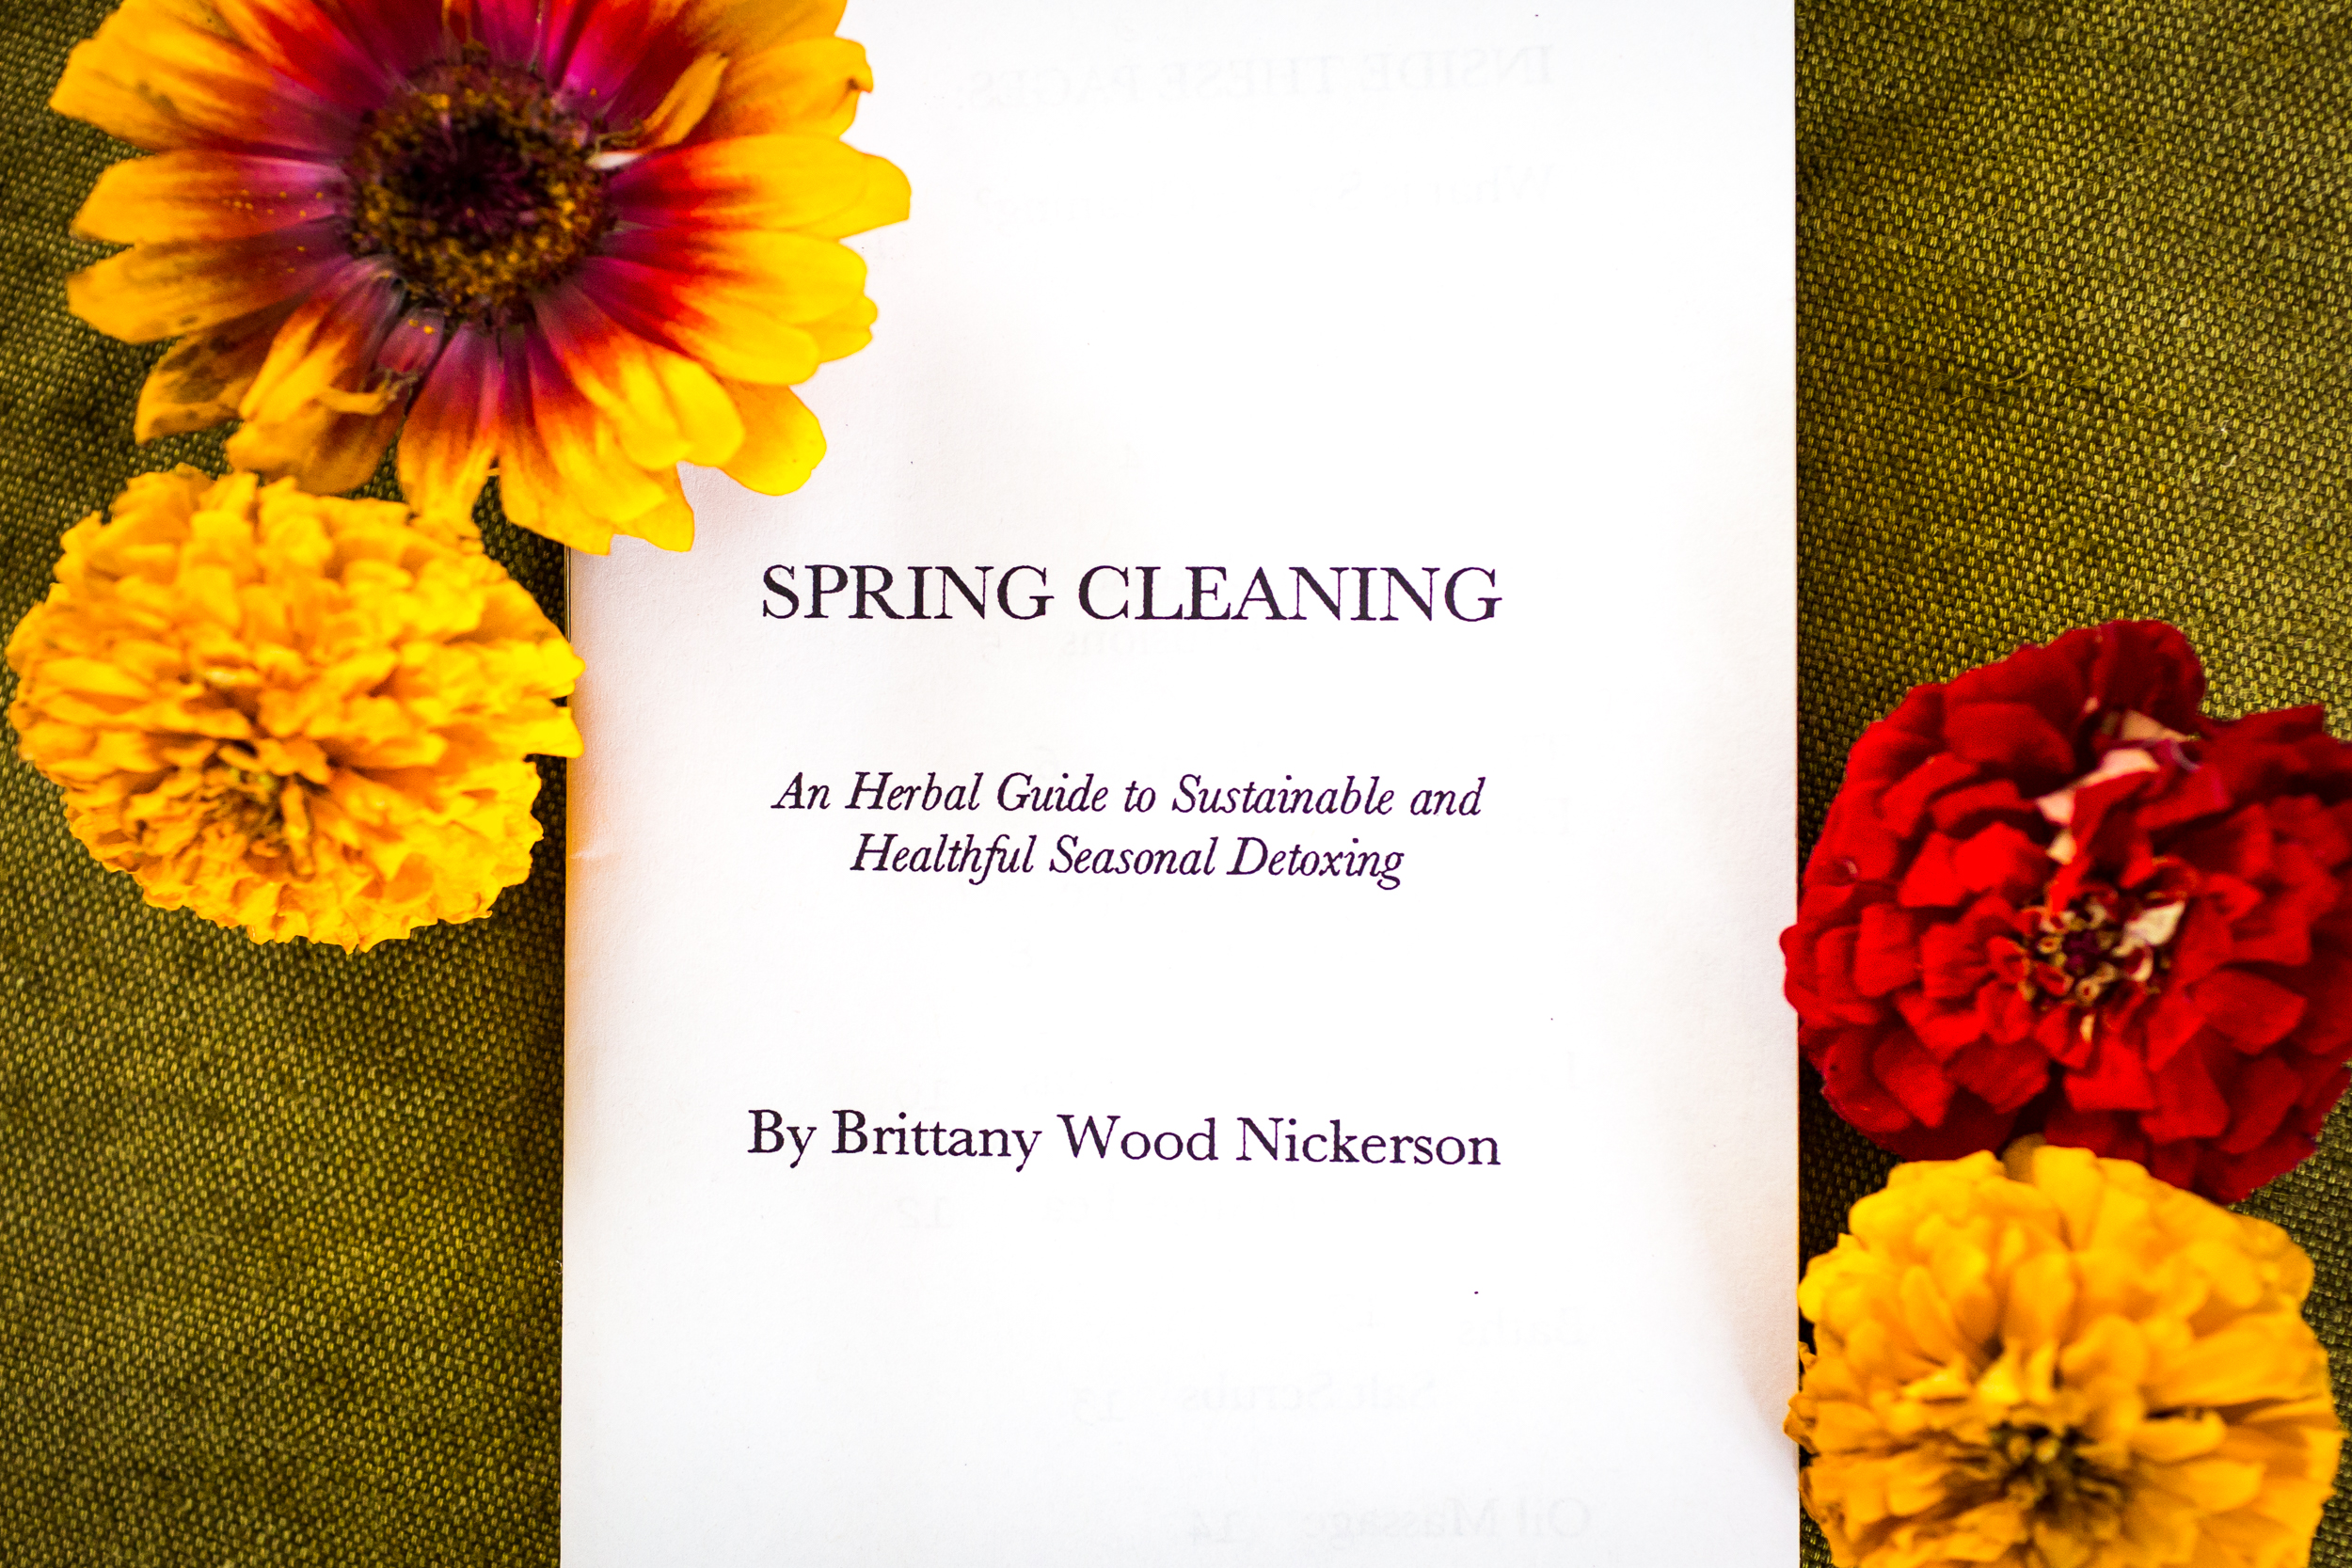 Spring Cleaning Pamphlet Thyme Herbal